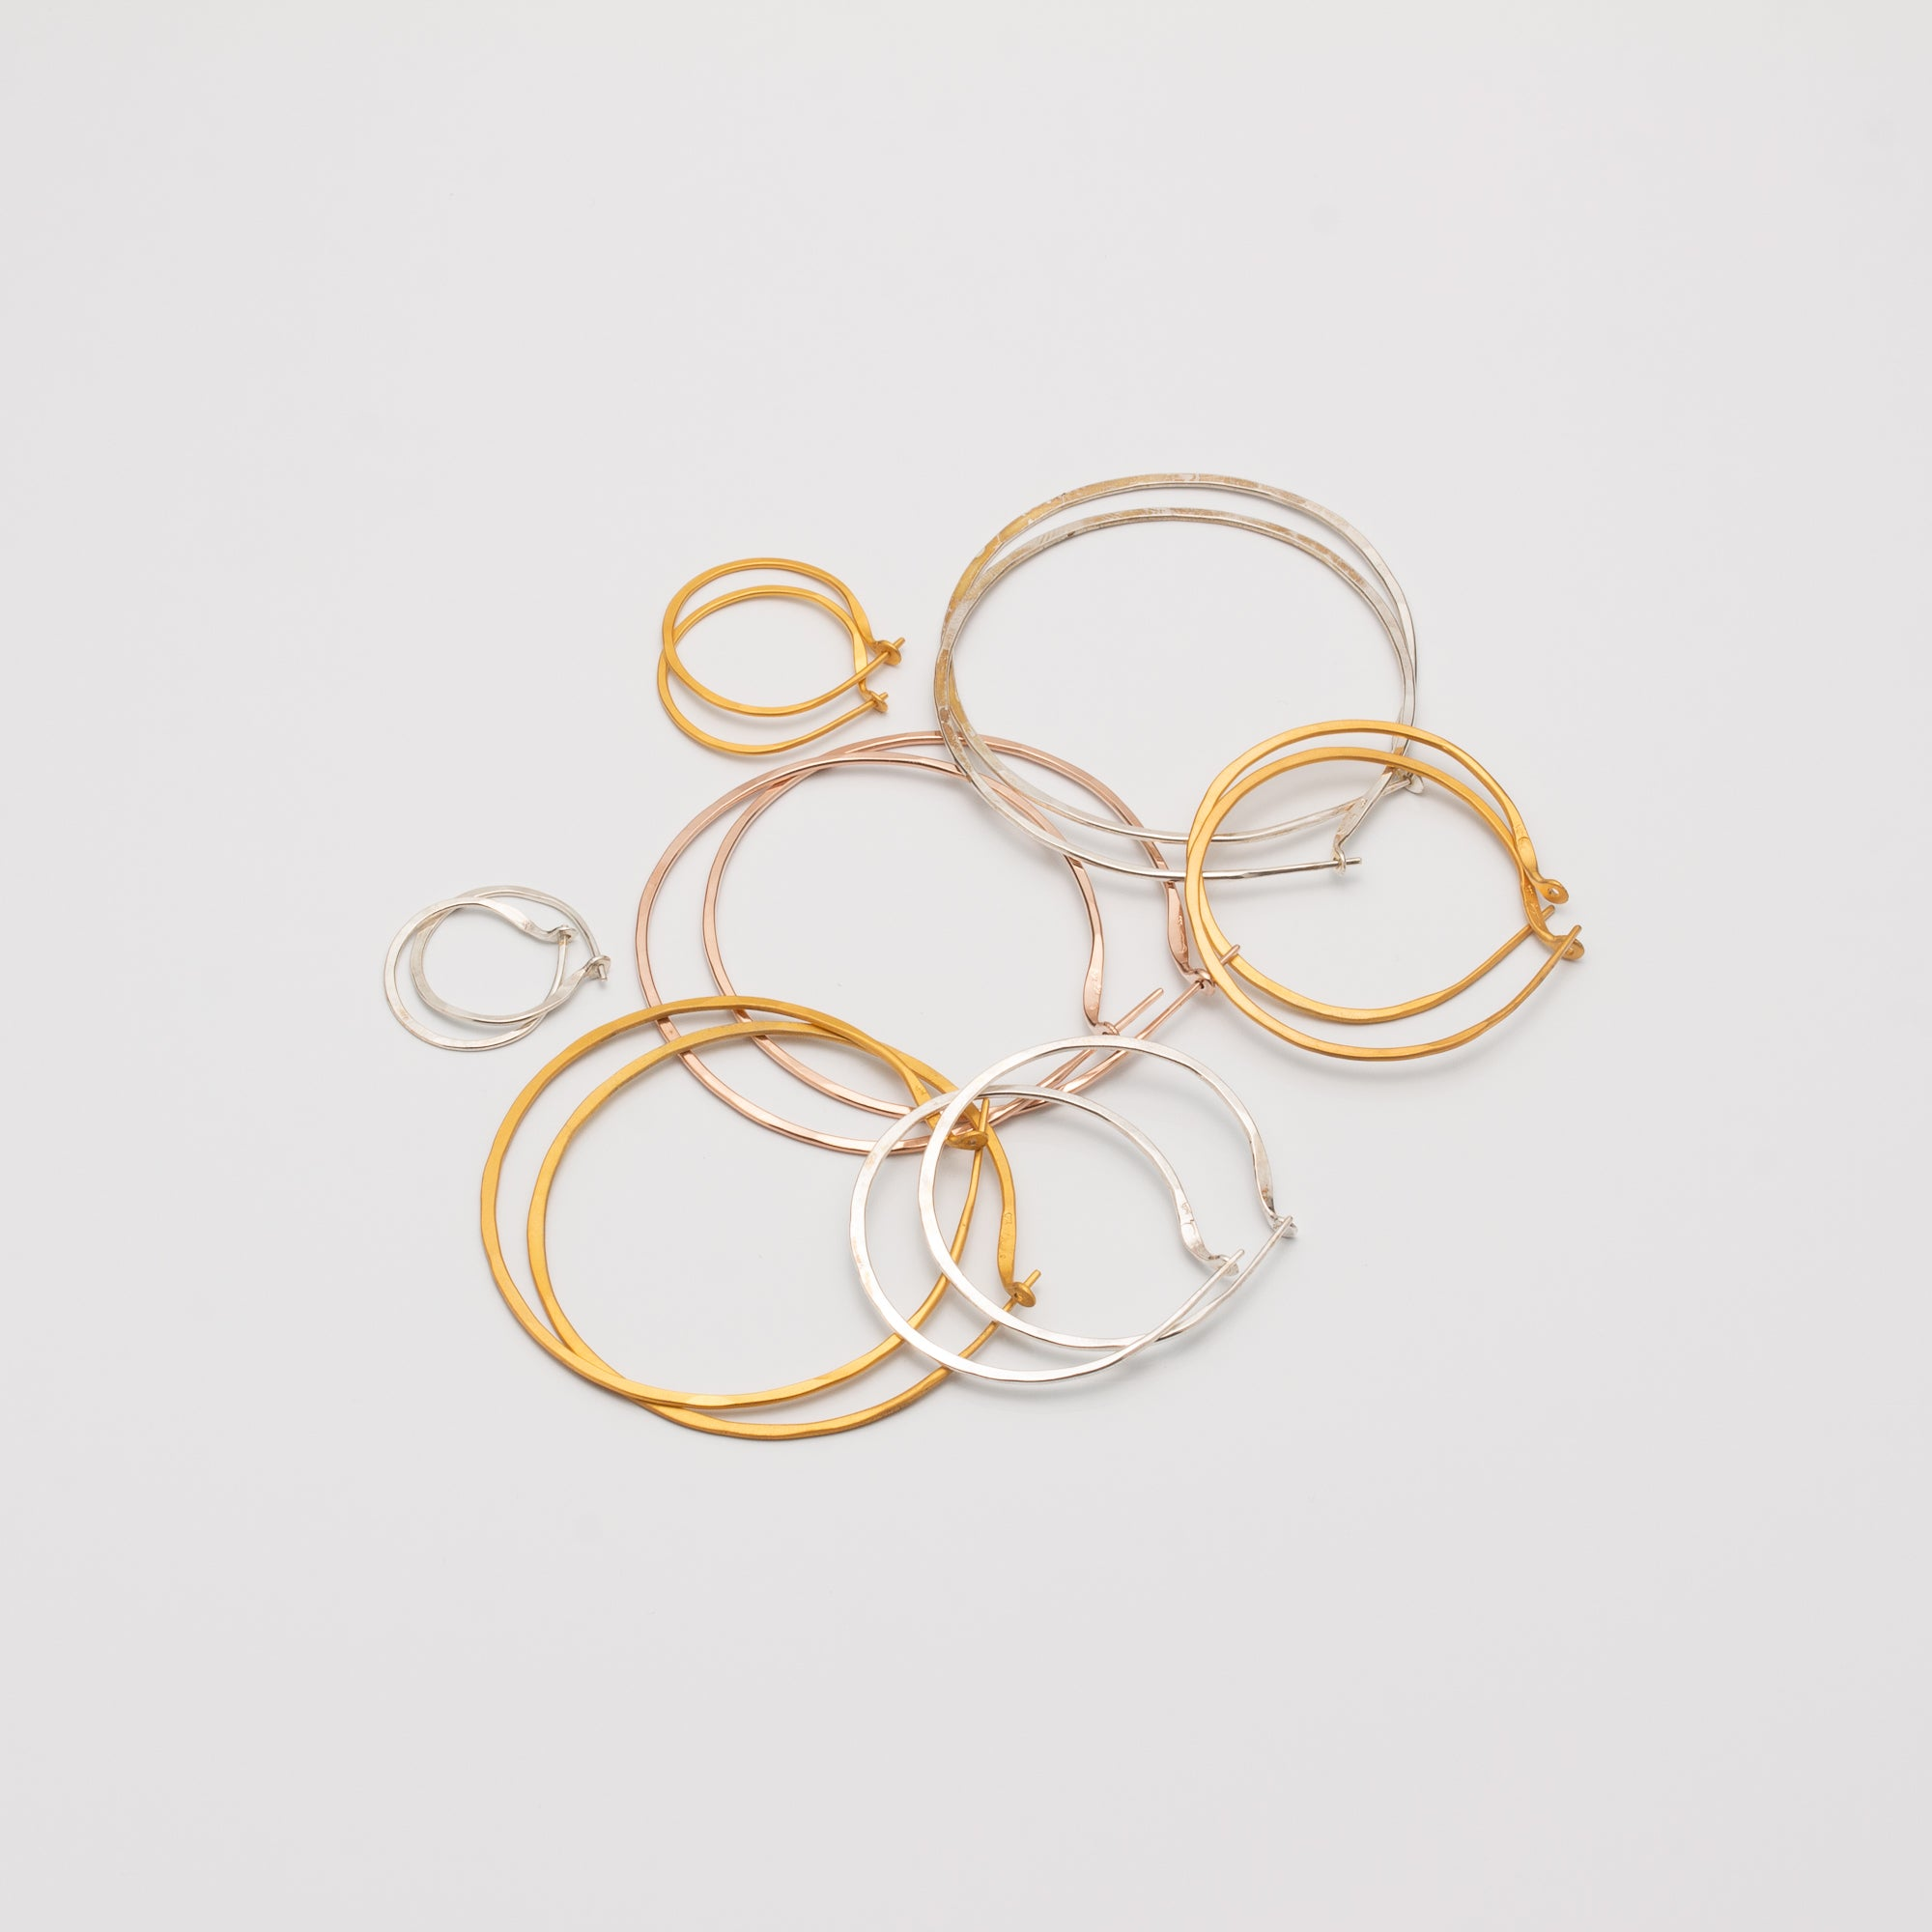 HOOPS // MEDIUM // ROUND // VERMEIL